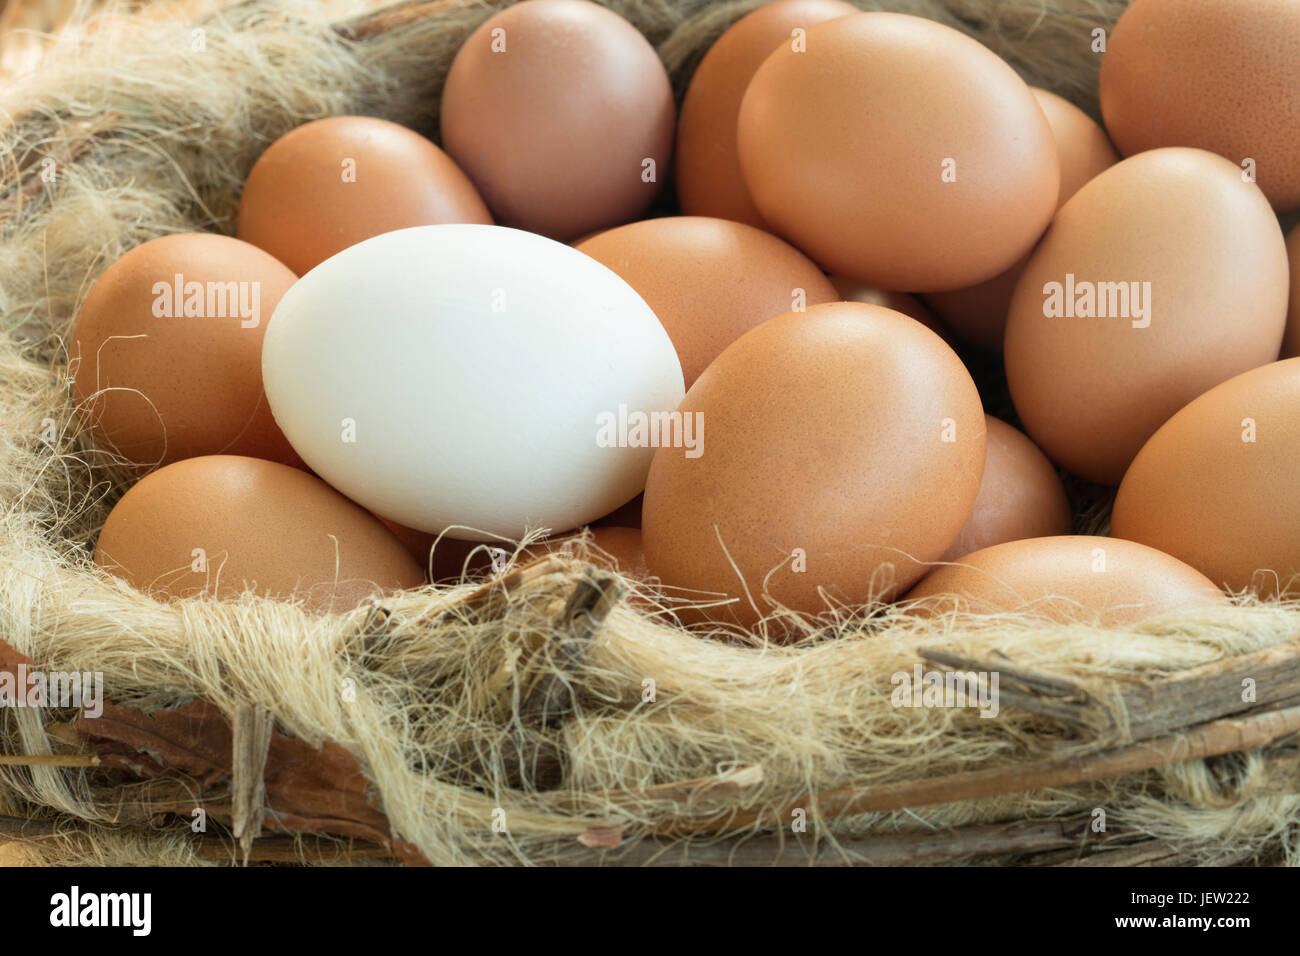 Group of brown eggs expect one, which is white coloured. It shows the uniqueness between individual and the mass. - Stock Image